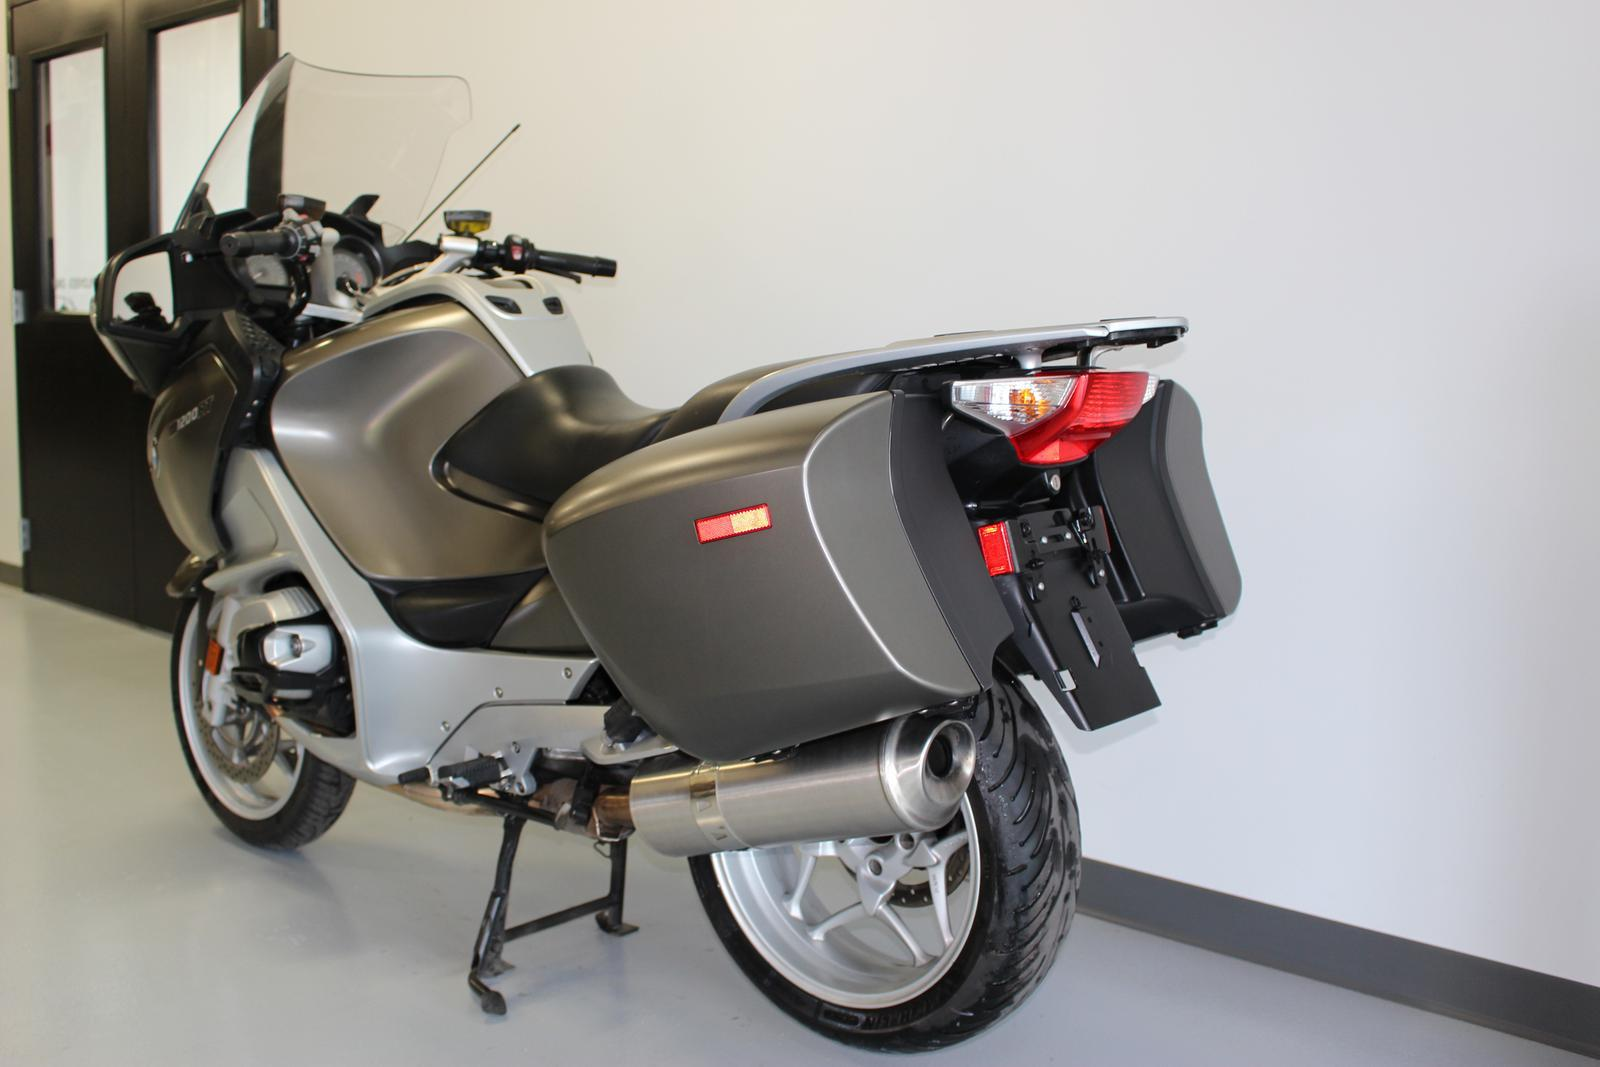 2010 bmw r 1200 rt sport touring motorcycle from de pere wi today. Cars Review. Best American Auto & Cars Review